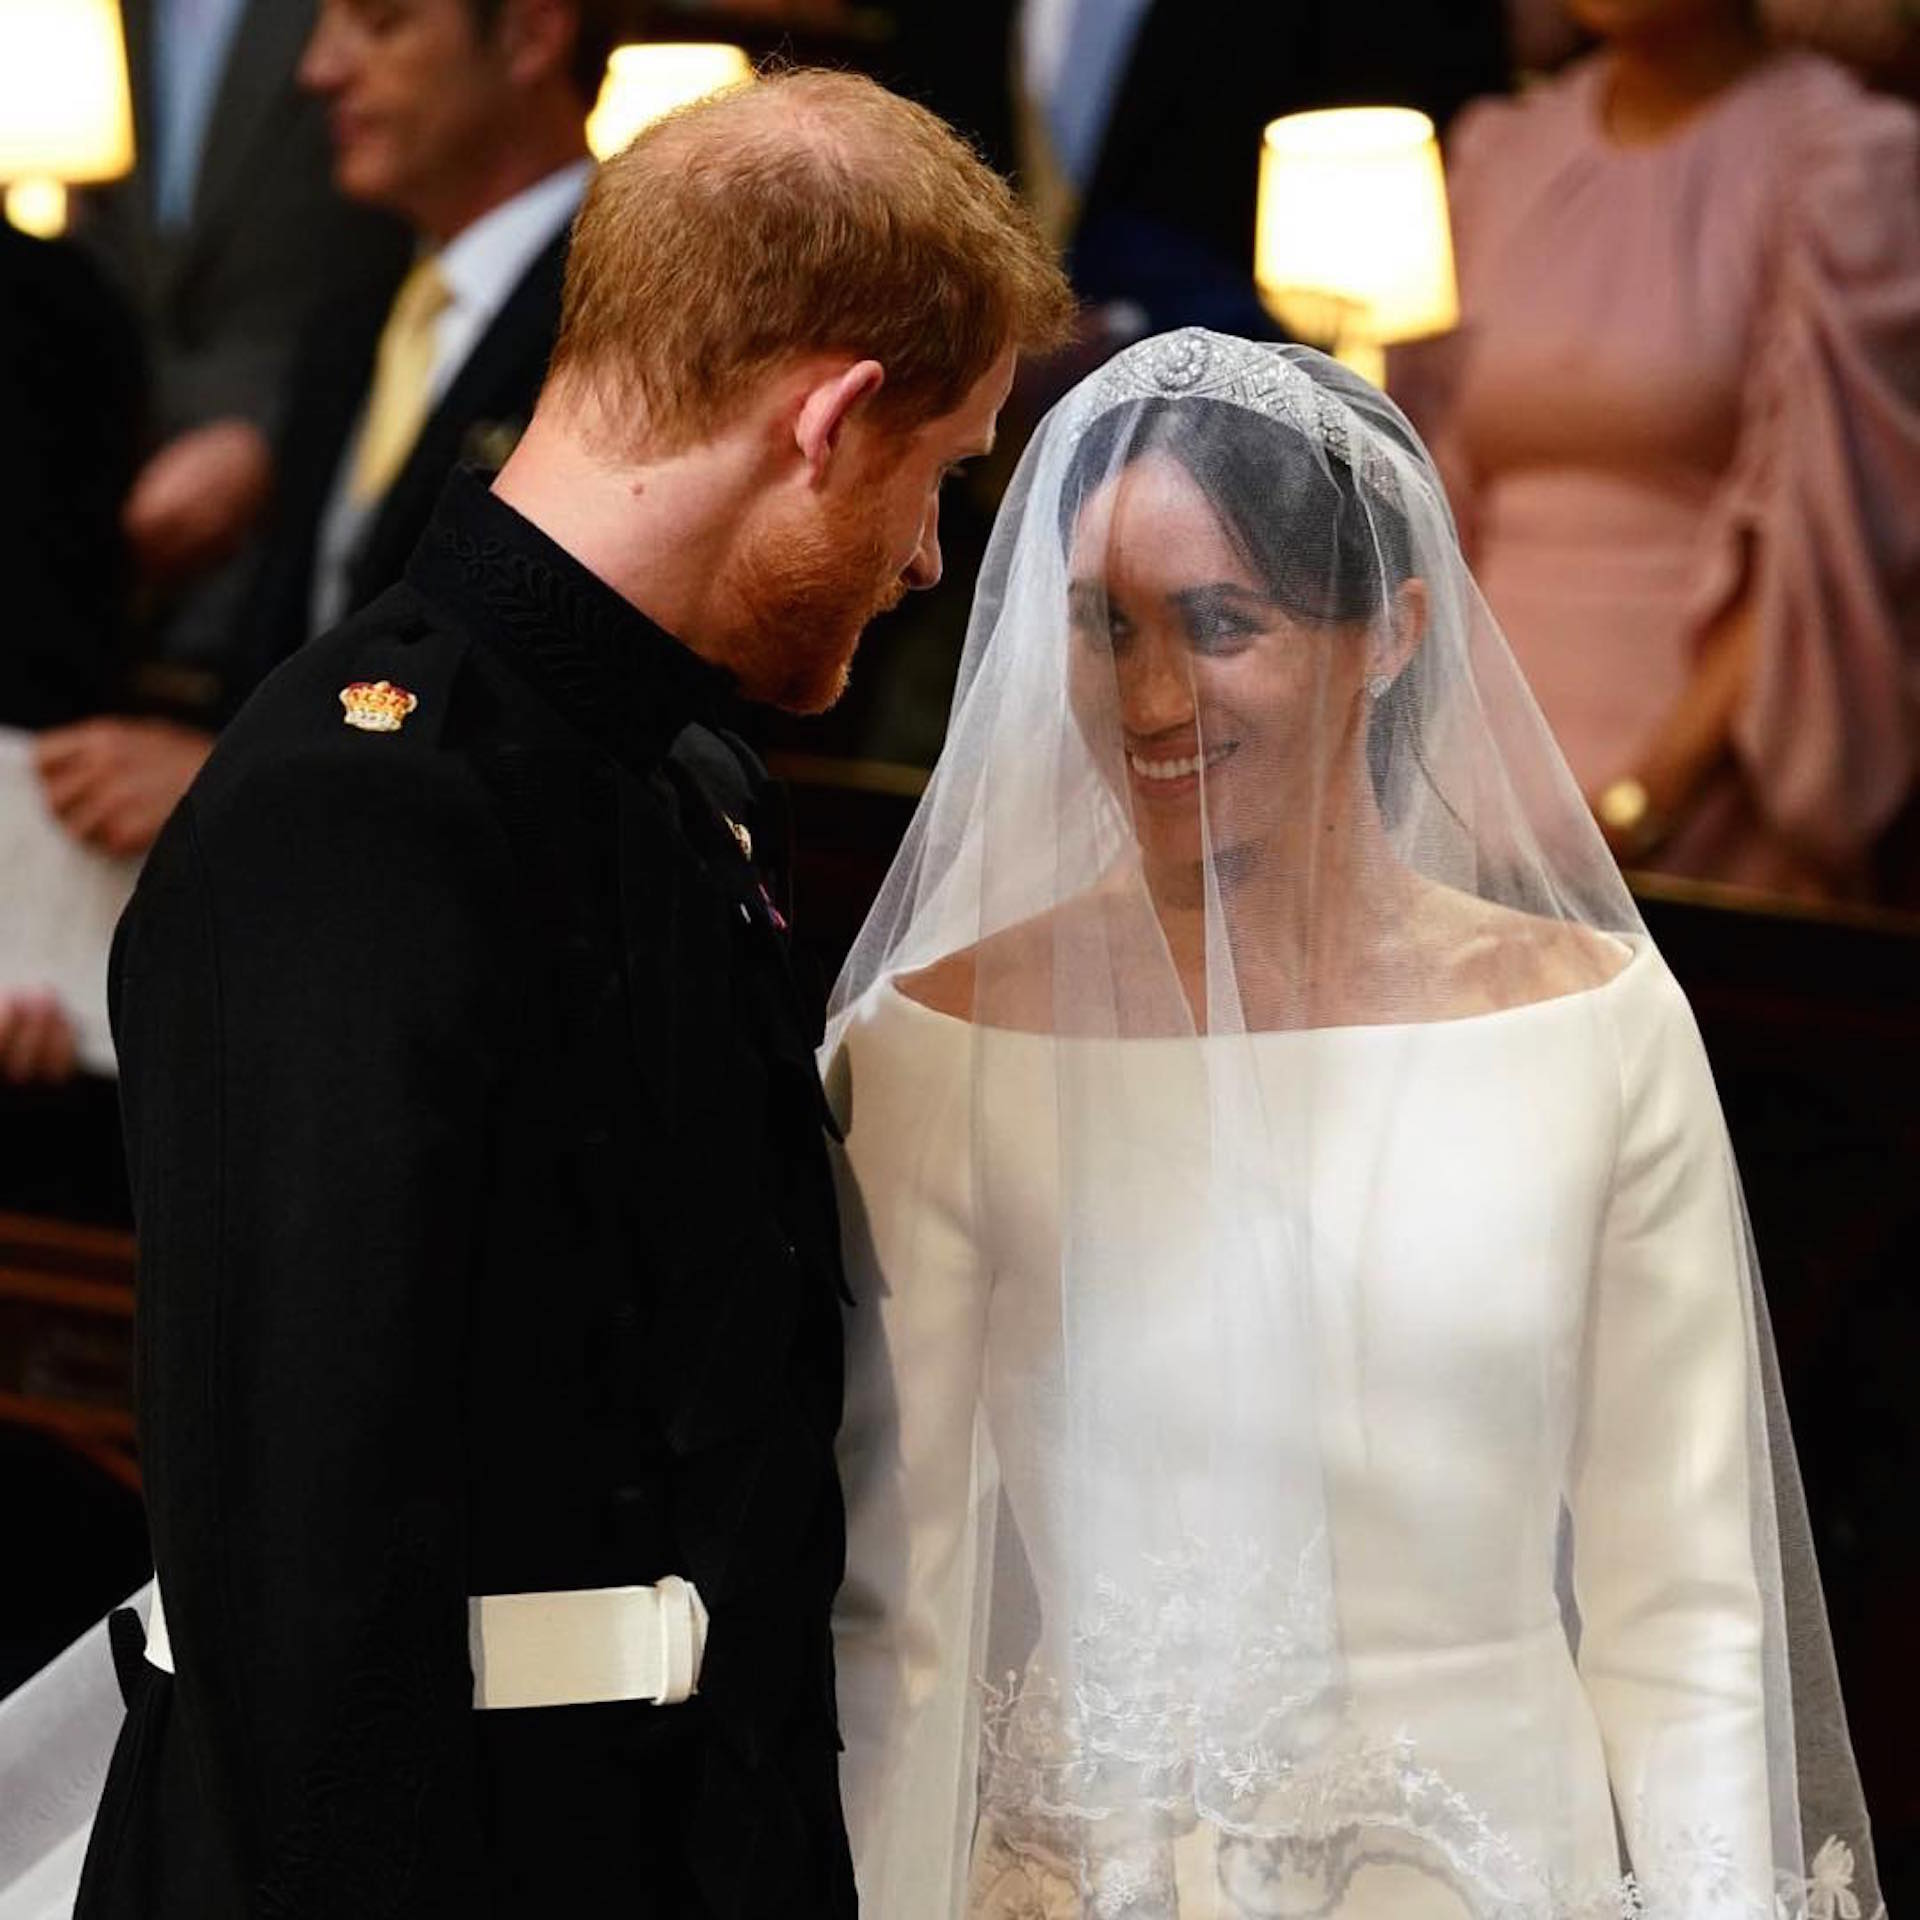 https://s3.amazonaws.com/arc-wordpress-client-uploads/infobae-wp/wp-content/uploads/2018/05/19180644/GENTE-boda-real-principe-harry-meghan-markle-altar.jpg